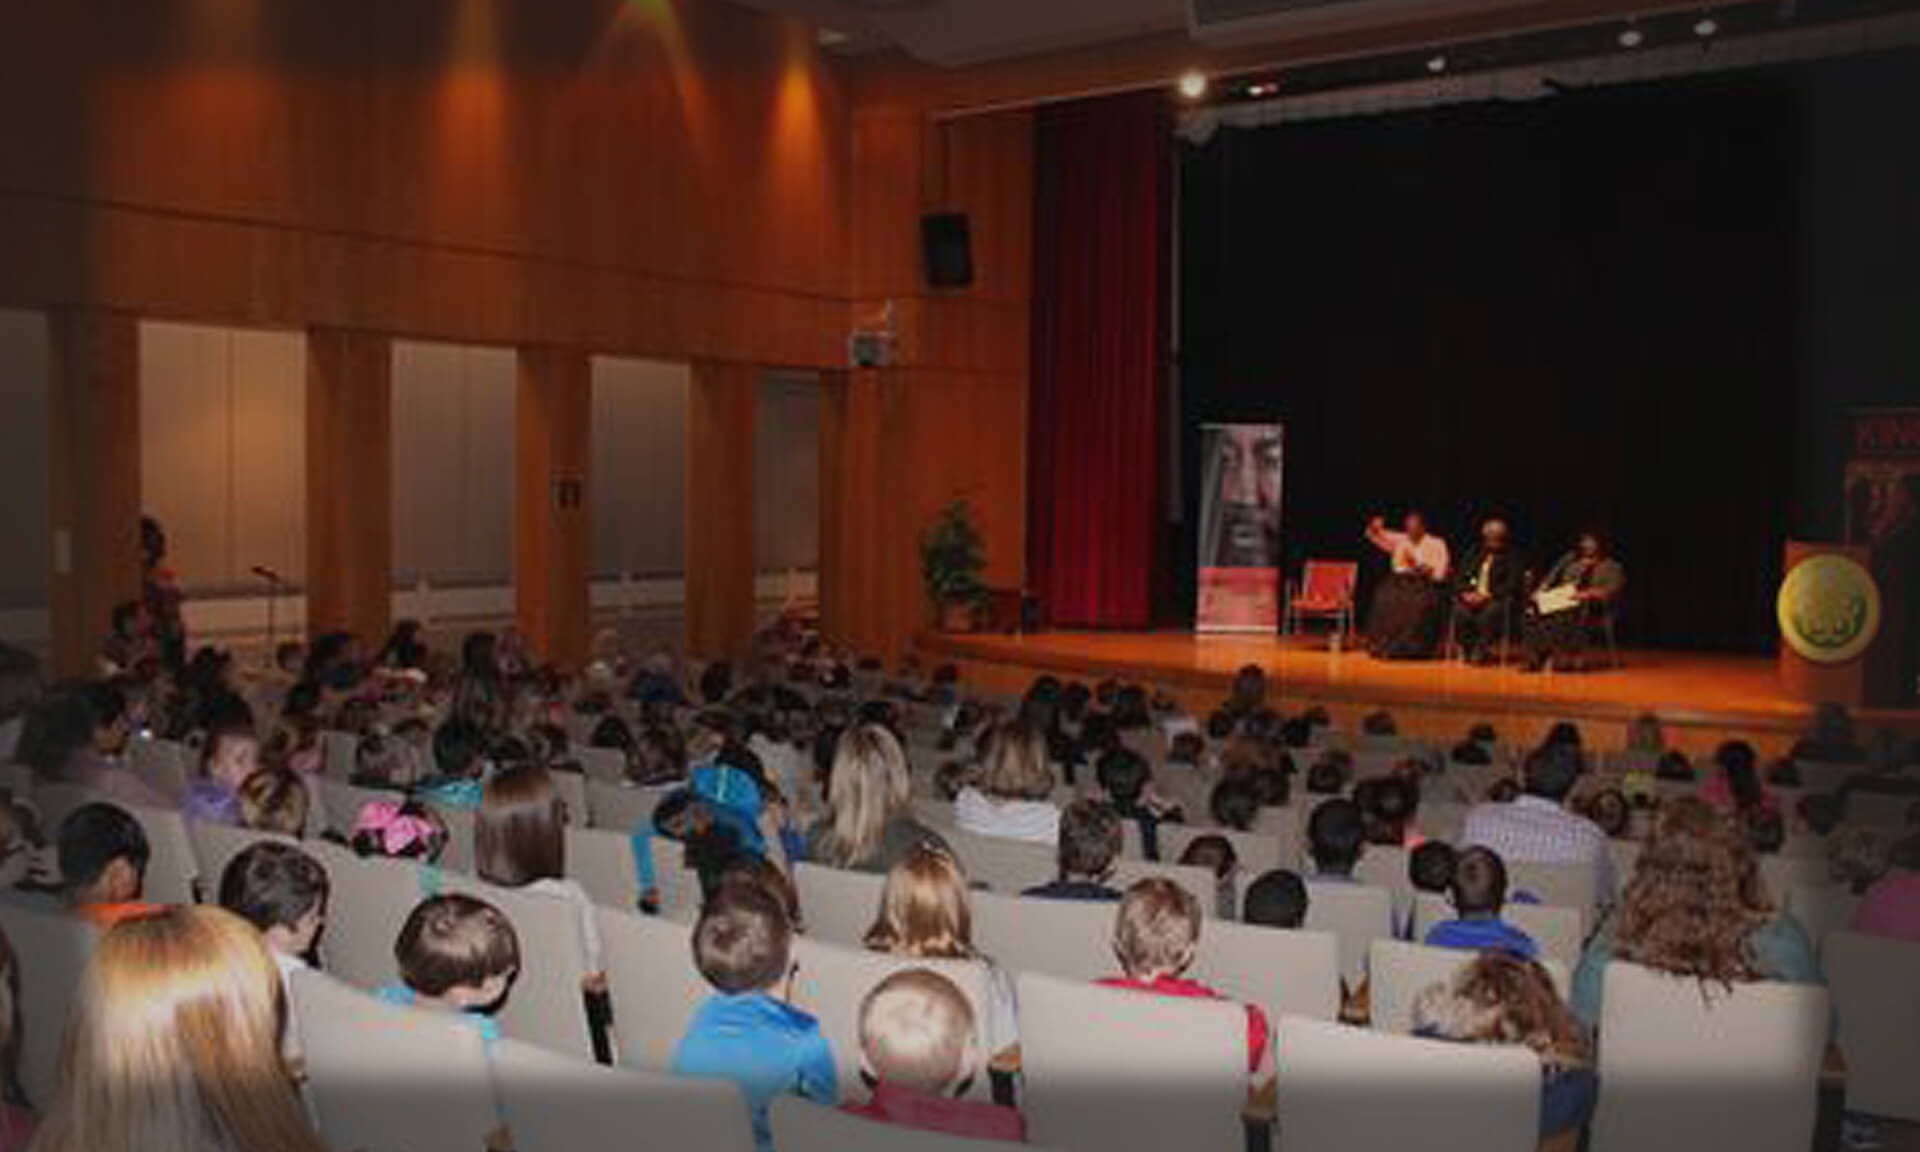 Auditorium with students and speakers